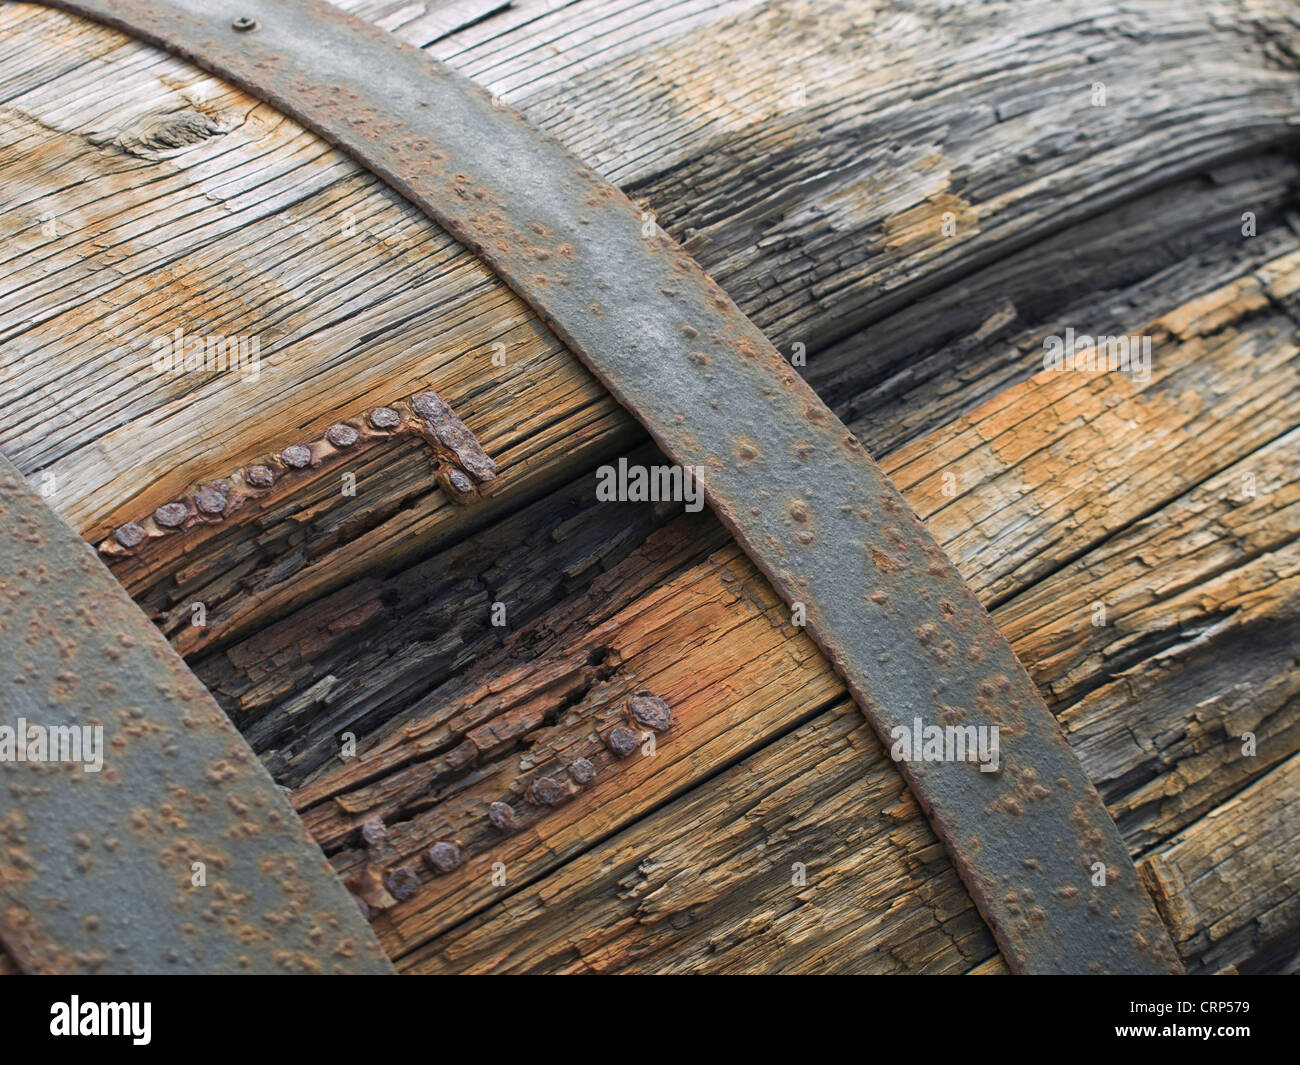 Rusty wine barrel, close up of weathered wood  and rusty iron bands, Lanzarote, Canaty islands Spain - Stock Image